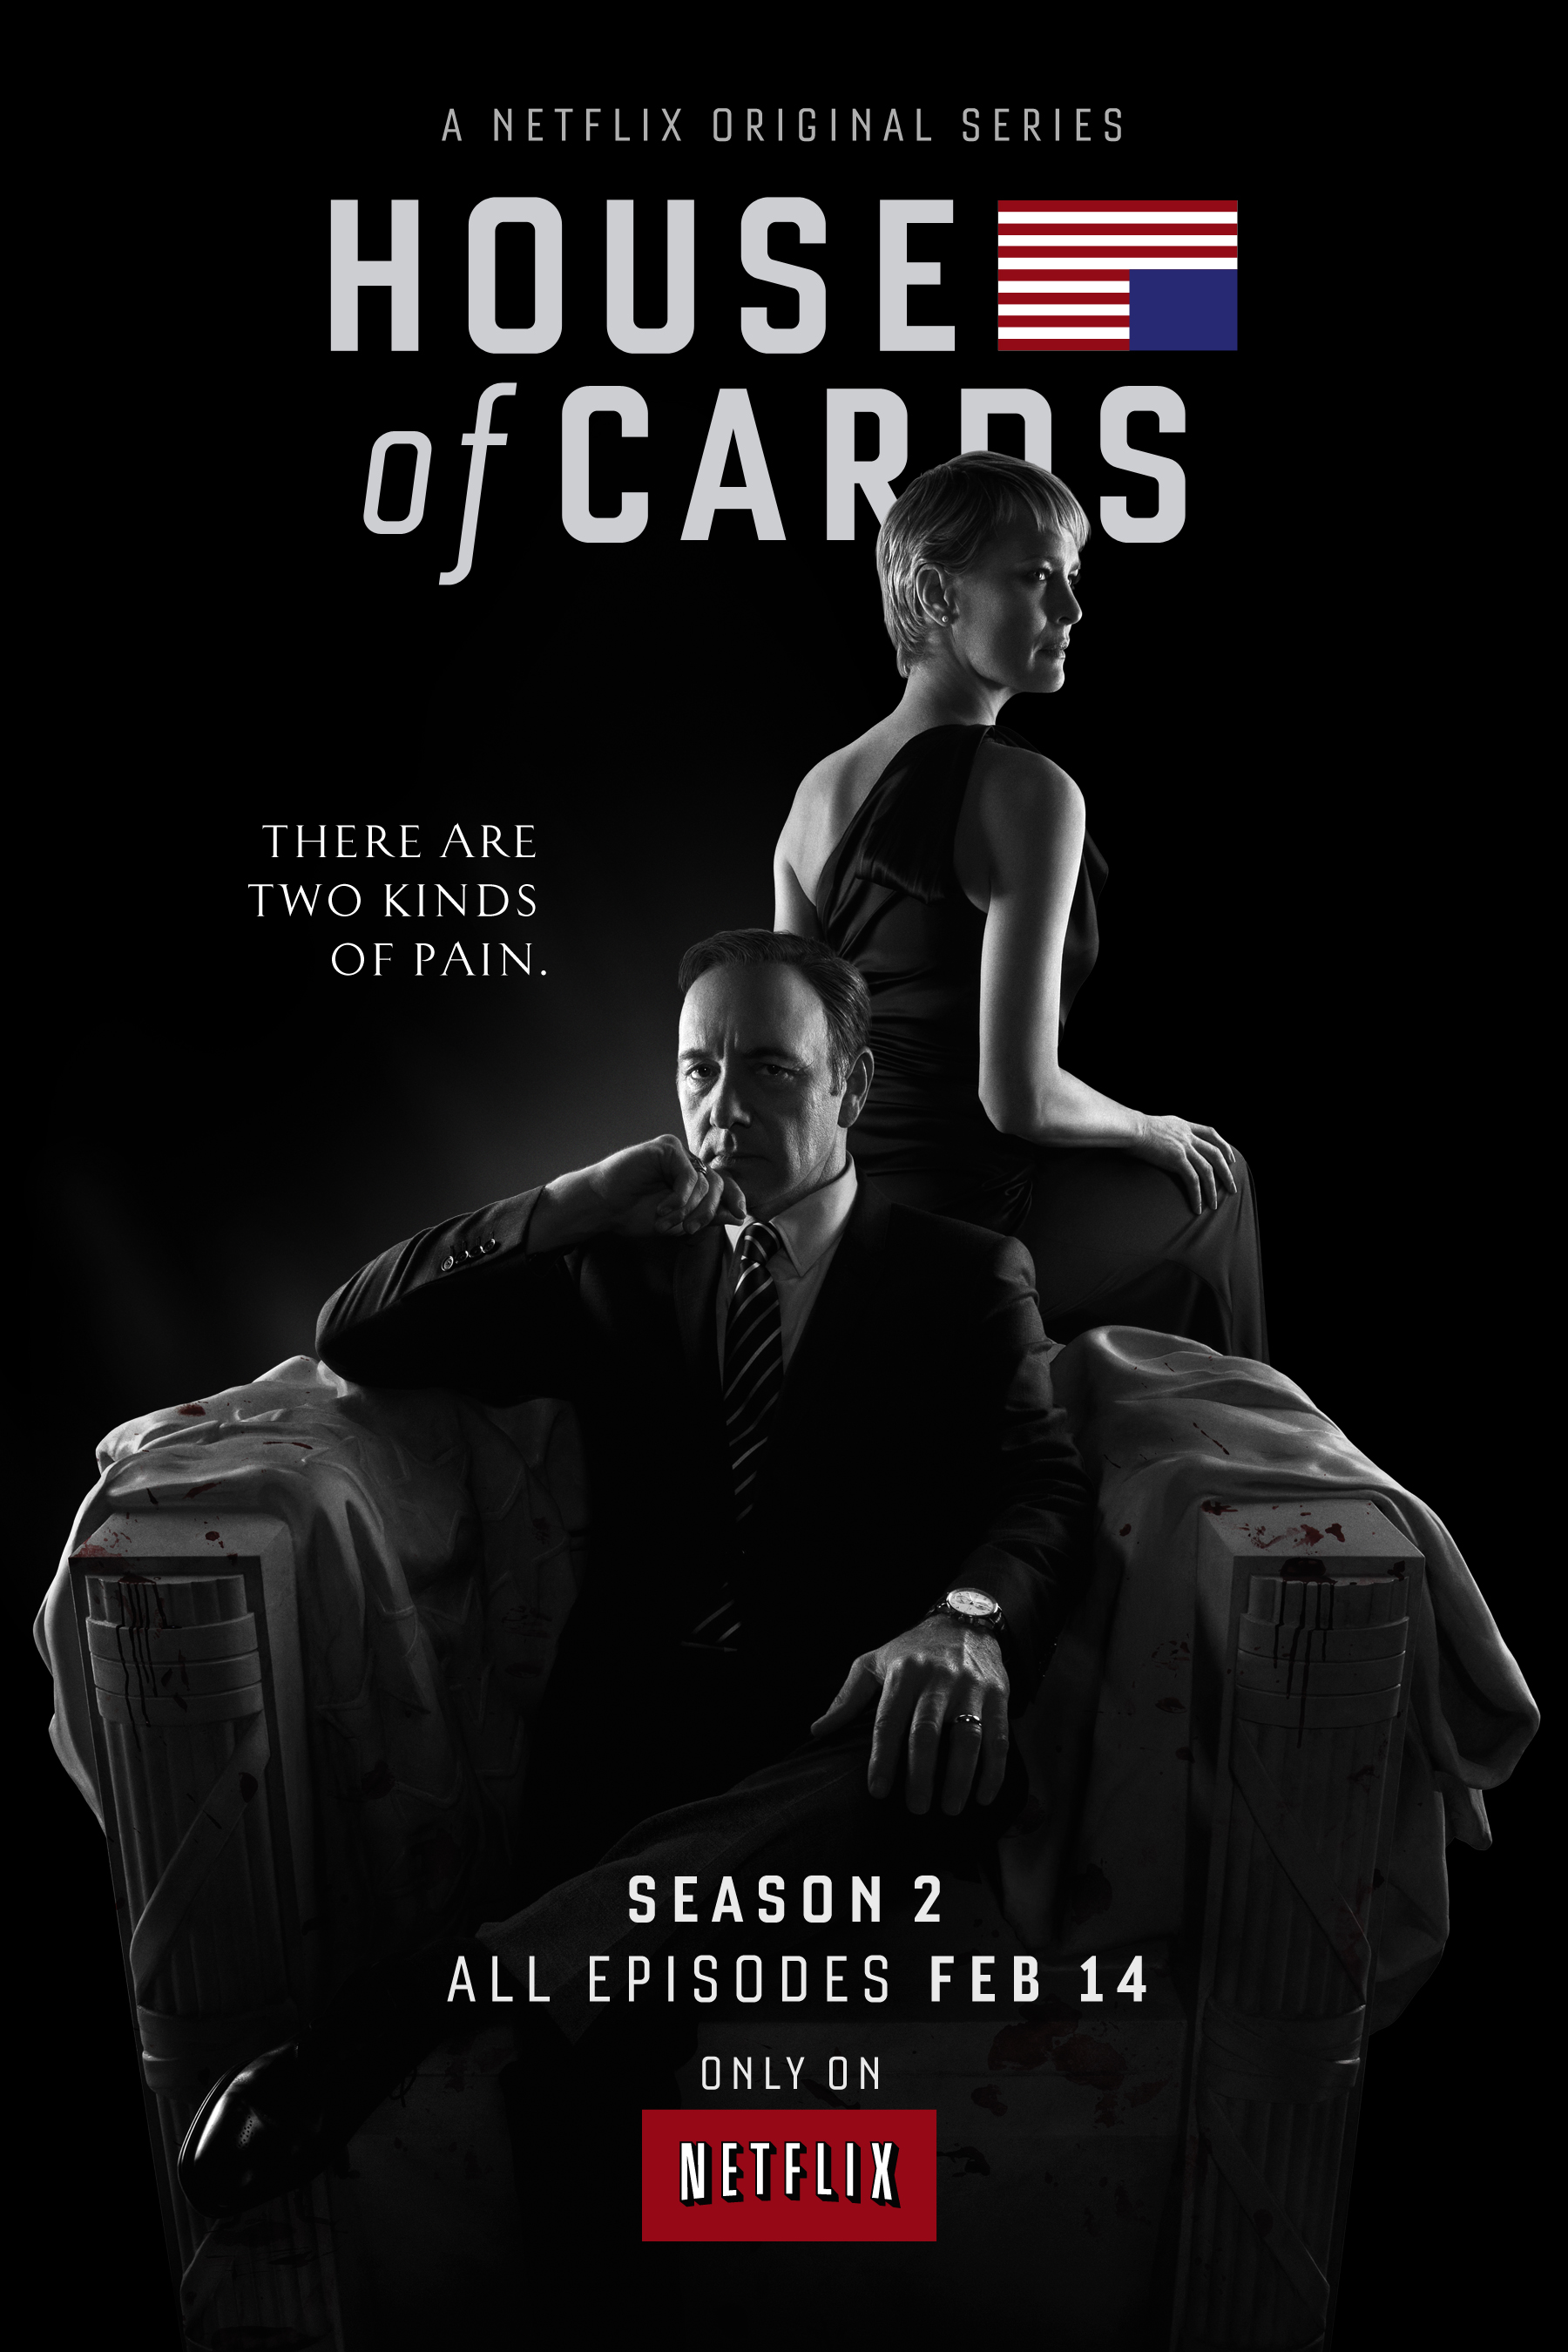 HOCs2 Poster Enter House of Cards with New Season 2 Trailer and Key Art